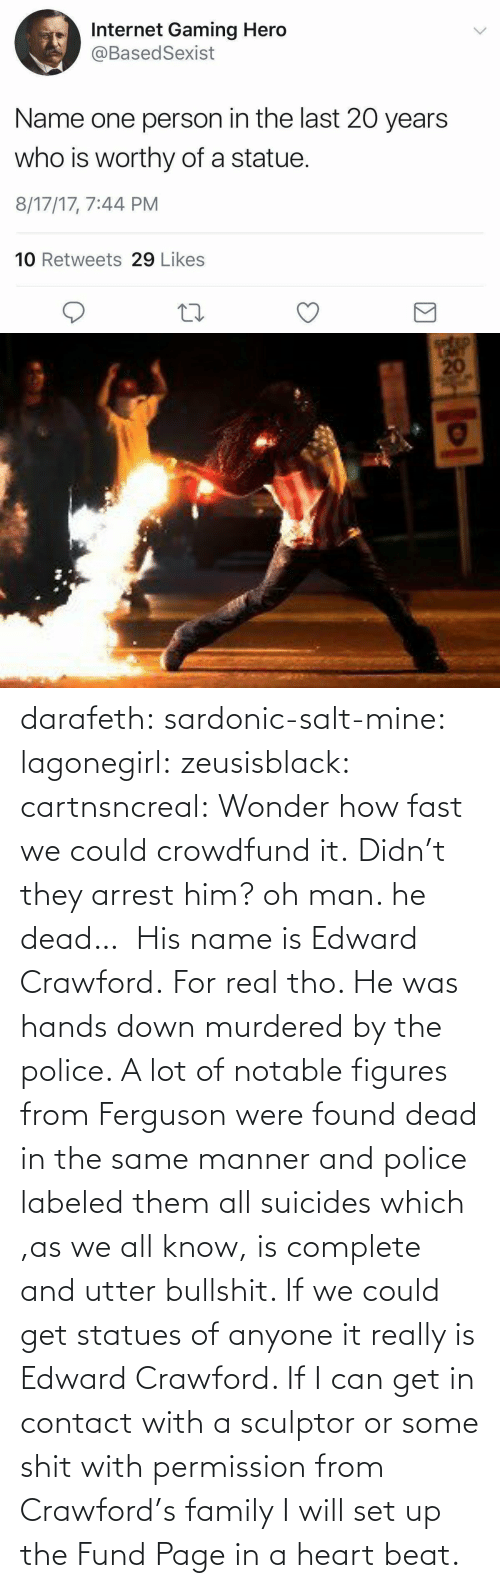 Fund: darafeth: sardonic-salt-mine:  lagonegirl:  zeusisblack:  cartnsncreal:   Wonder how fast we could crowdfund it.    Didn't they arrest him?  oh man. he dead…   His name is Edward Crawford.   For real tho. He was hands down murdered by the police. A lot of notable figures from Ferguson were found dead in the same manner and police labeled them all suicides which ,as we all know, is complete and utter bullshit.  If we could get statues of anyone it really is Edward Crawford. If I can get in contact with a sculptor or some shit with permission from Crawford's family I will set up the Fund Page in a heart beat.